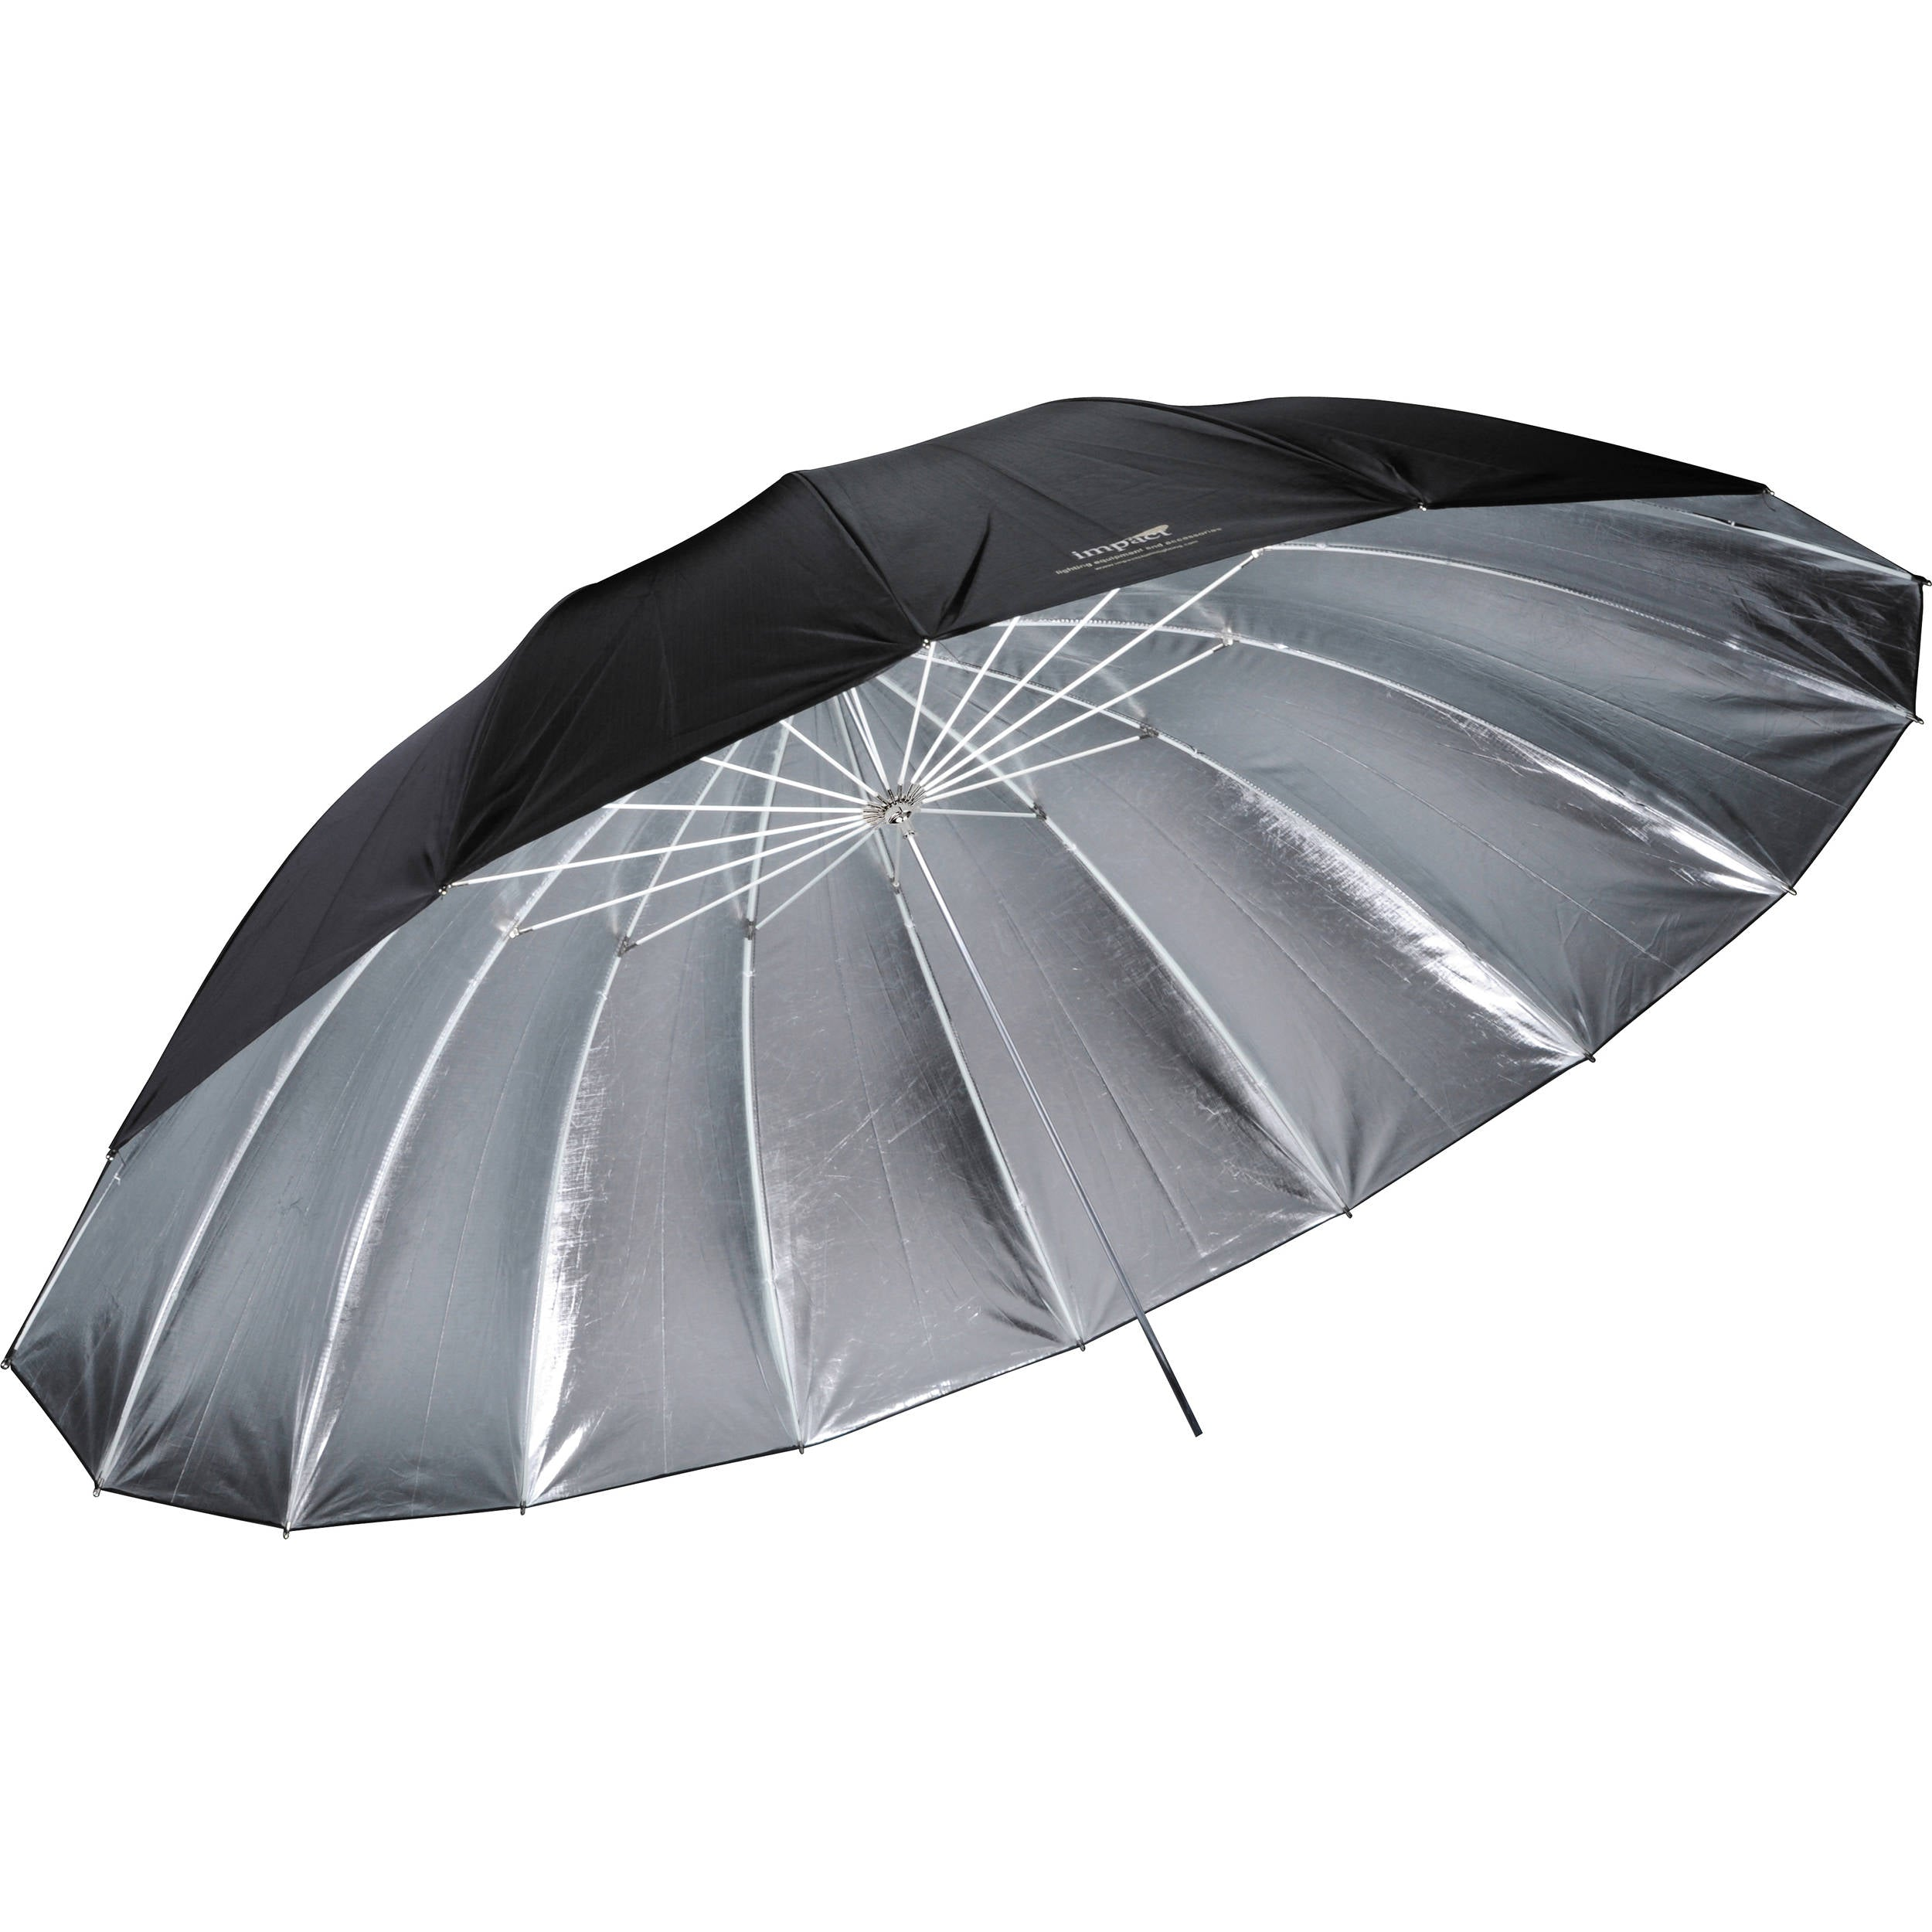 Impact 7' Improved Parabolic Umbrella (Silver)